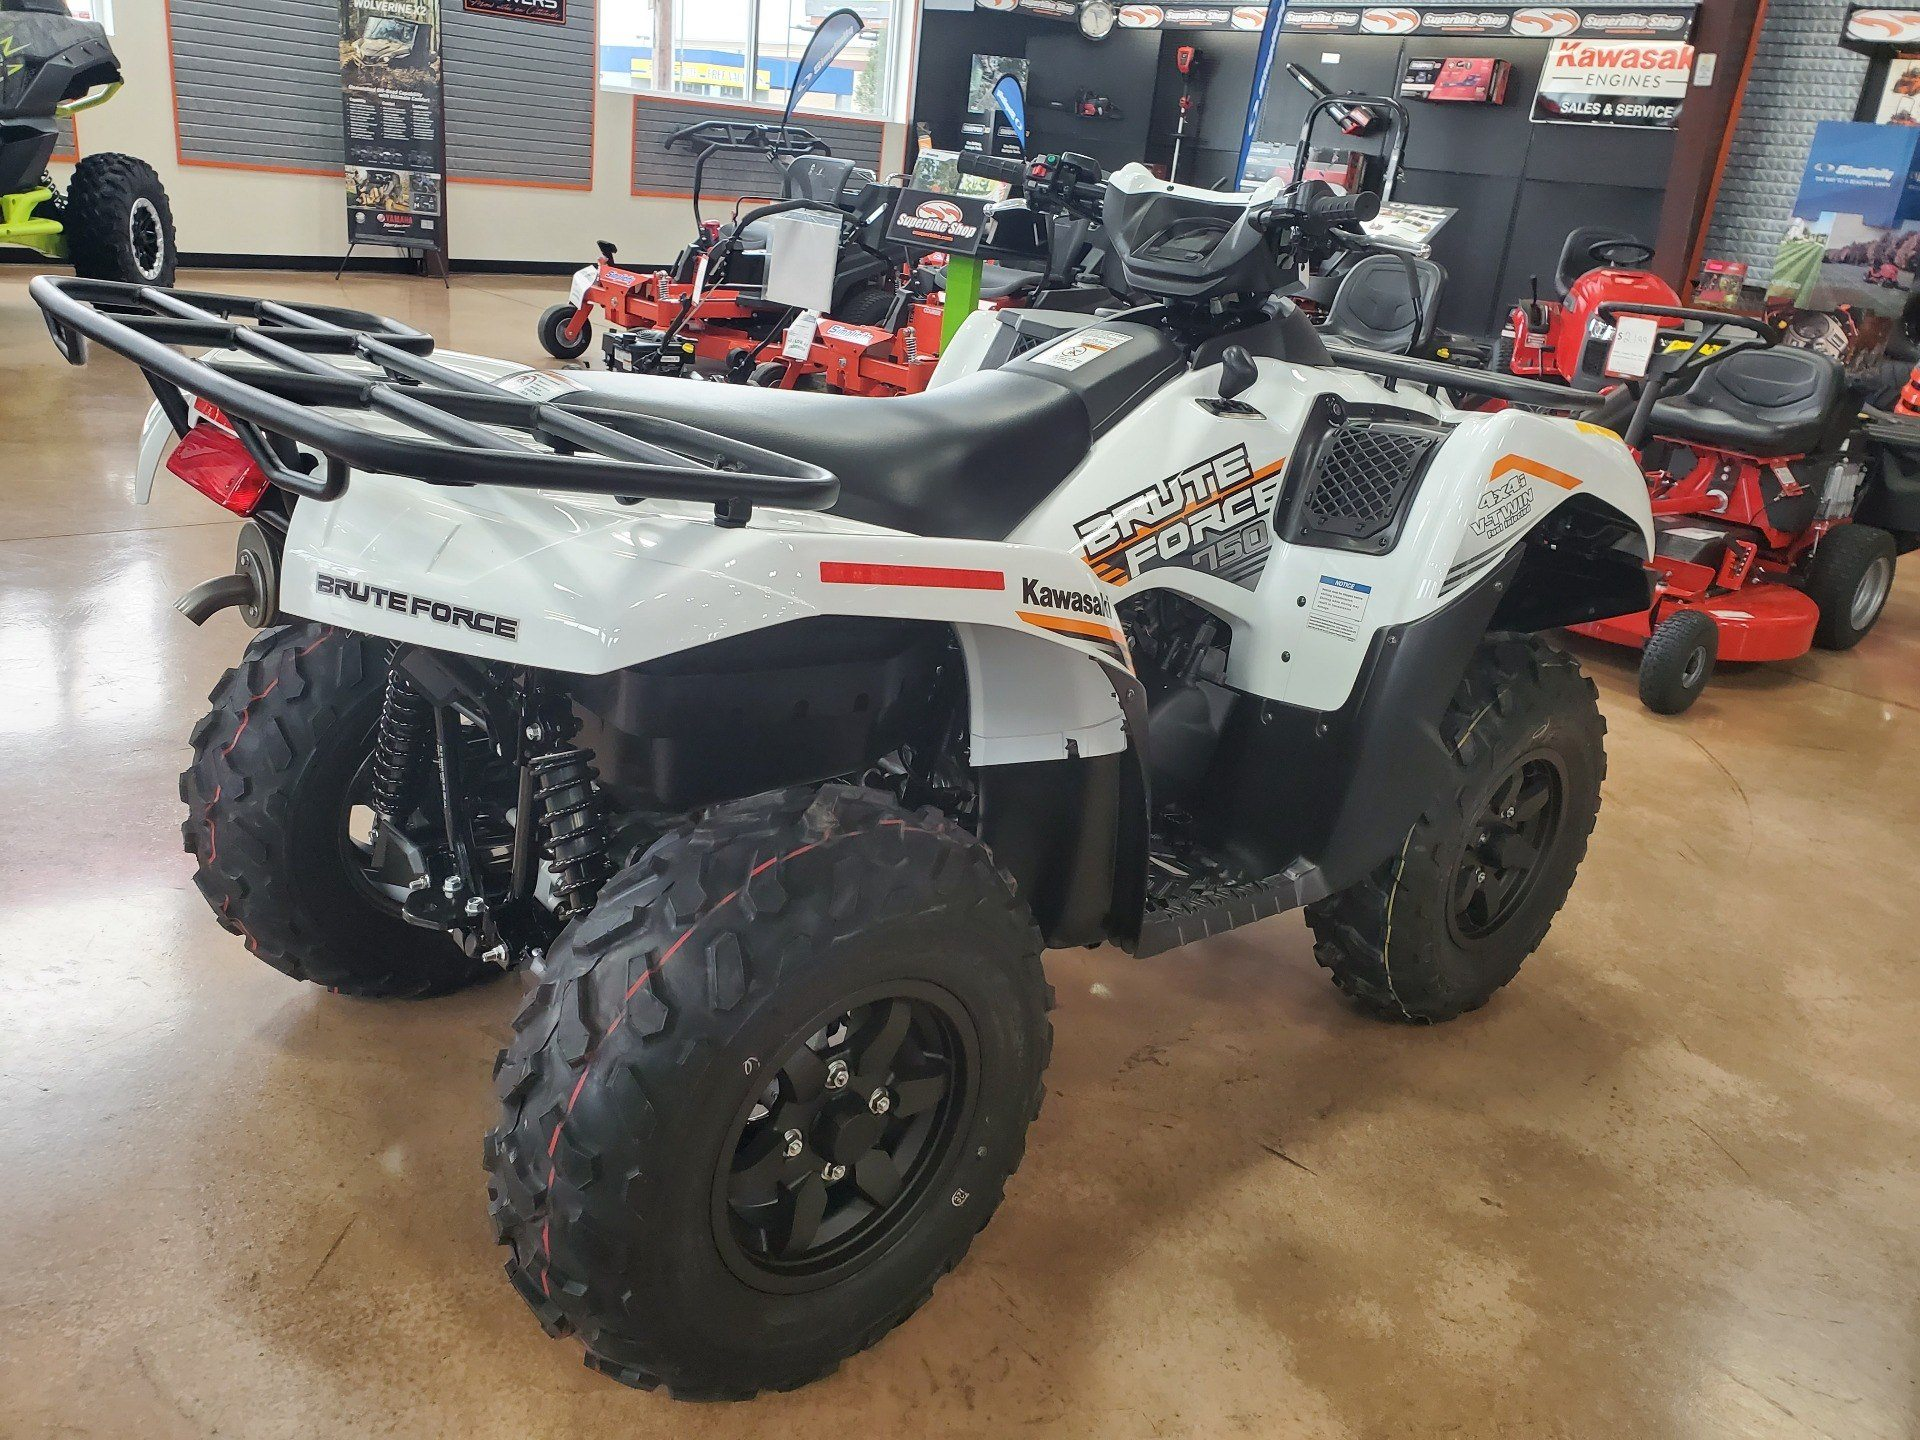 2021 Kawasaki Brute Force 750 4x4i EPS in Evansville, Indiana - Photo 5